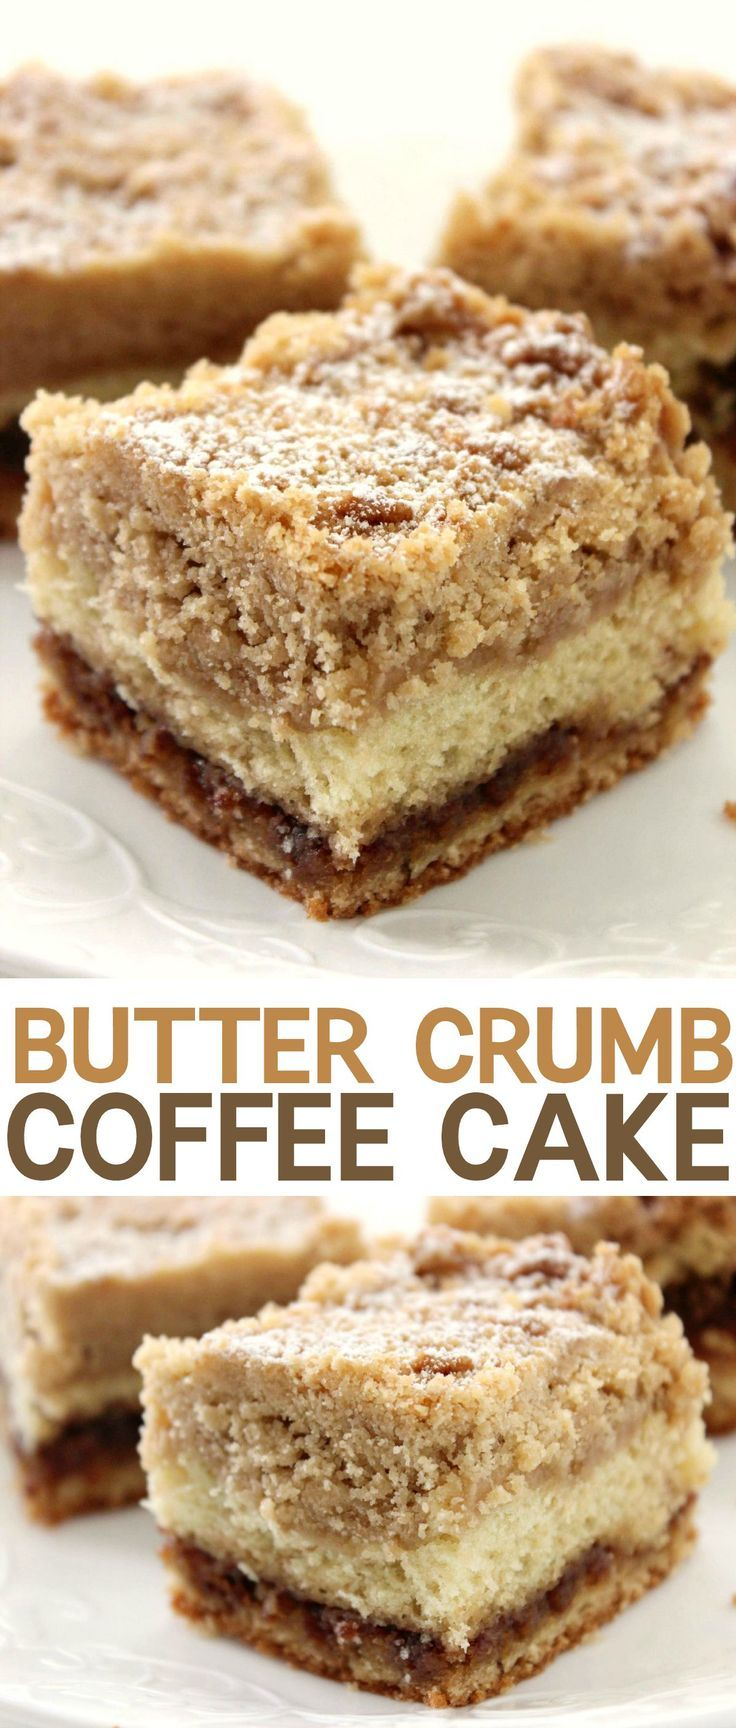 Homemade Butter Crumb Coffee Cake! This delicious and moist cake is perfect for a Sunday brunch with family or quick bite before work!